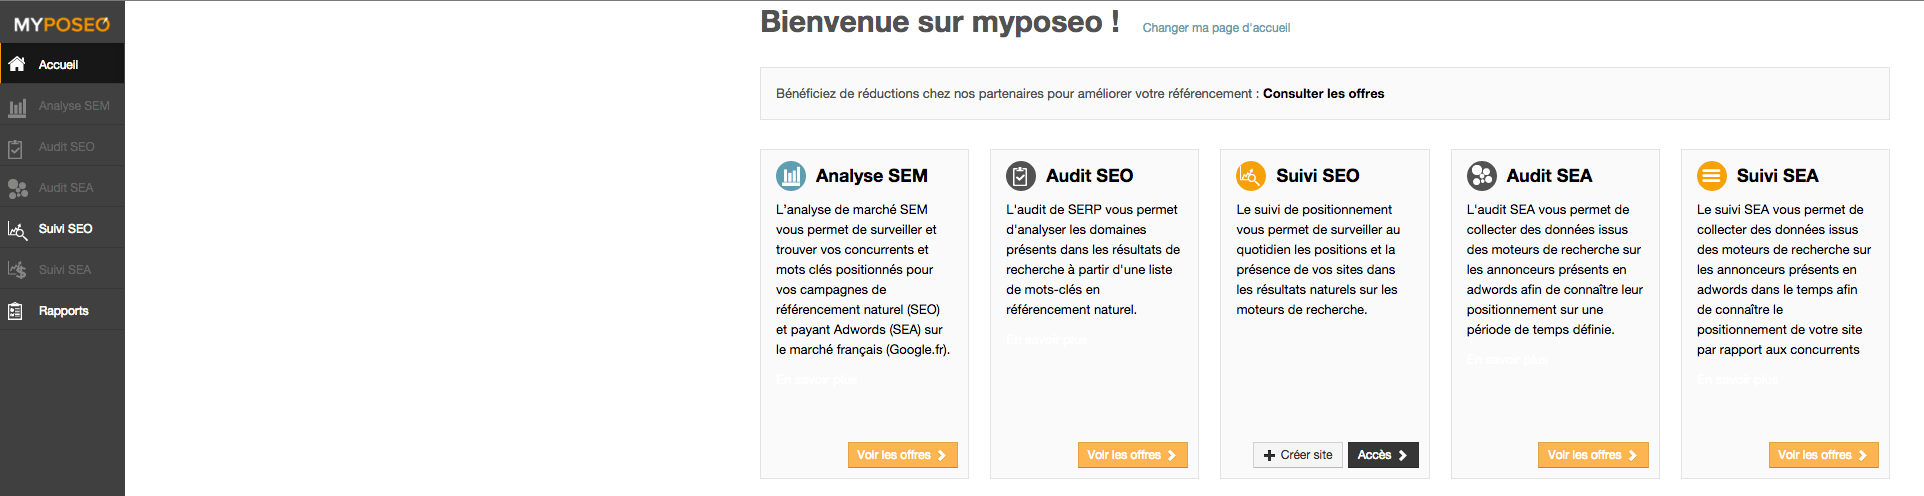 outil seo positionnement myposeo